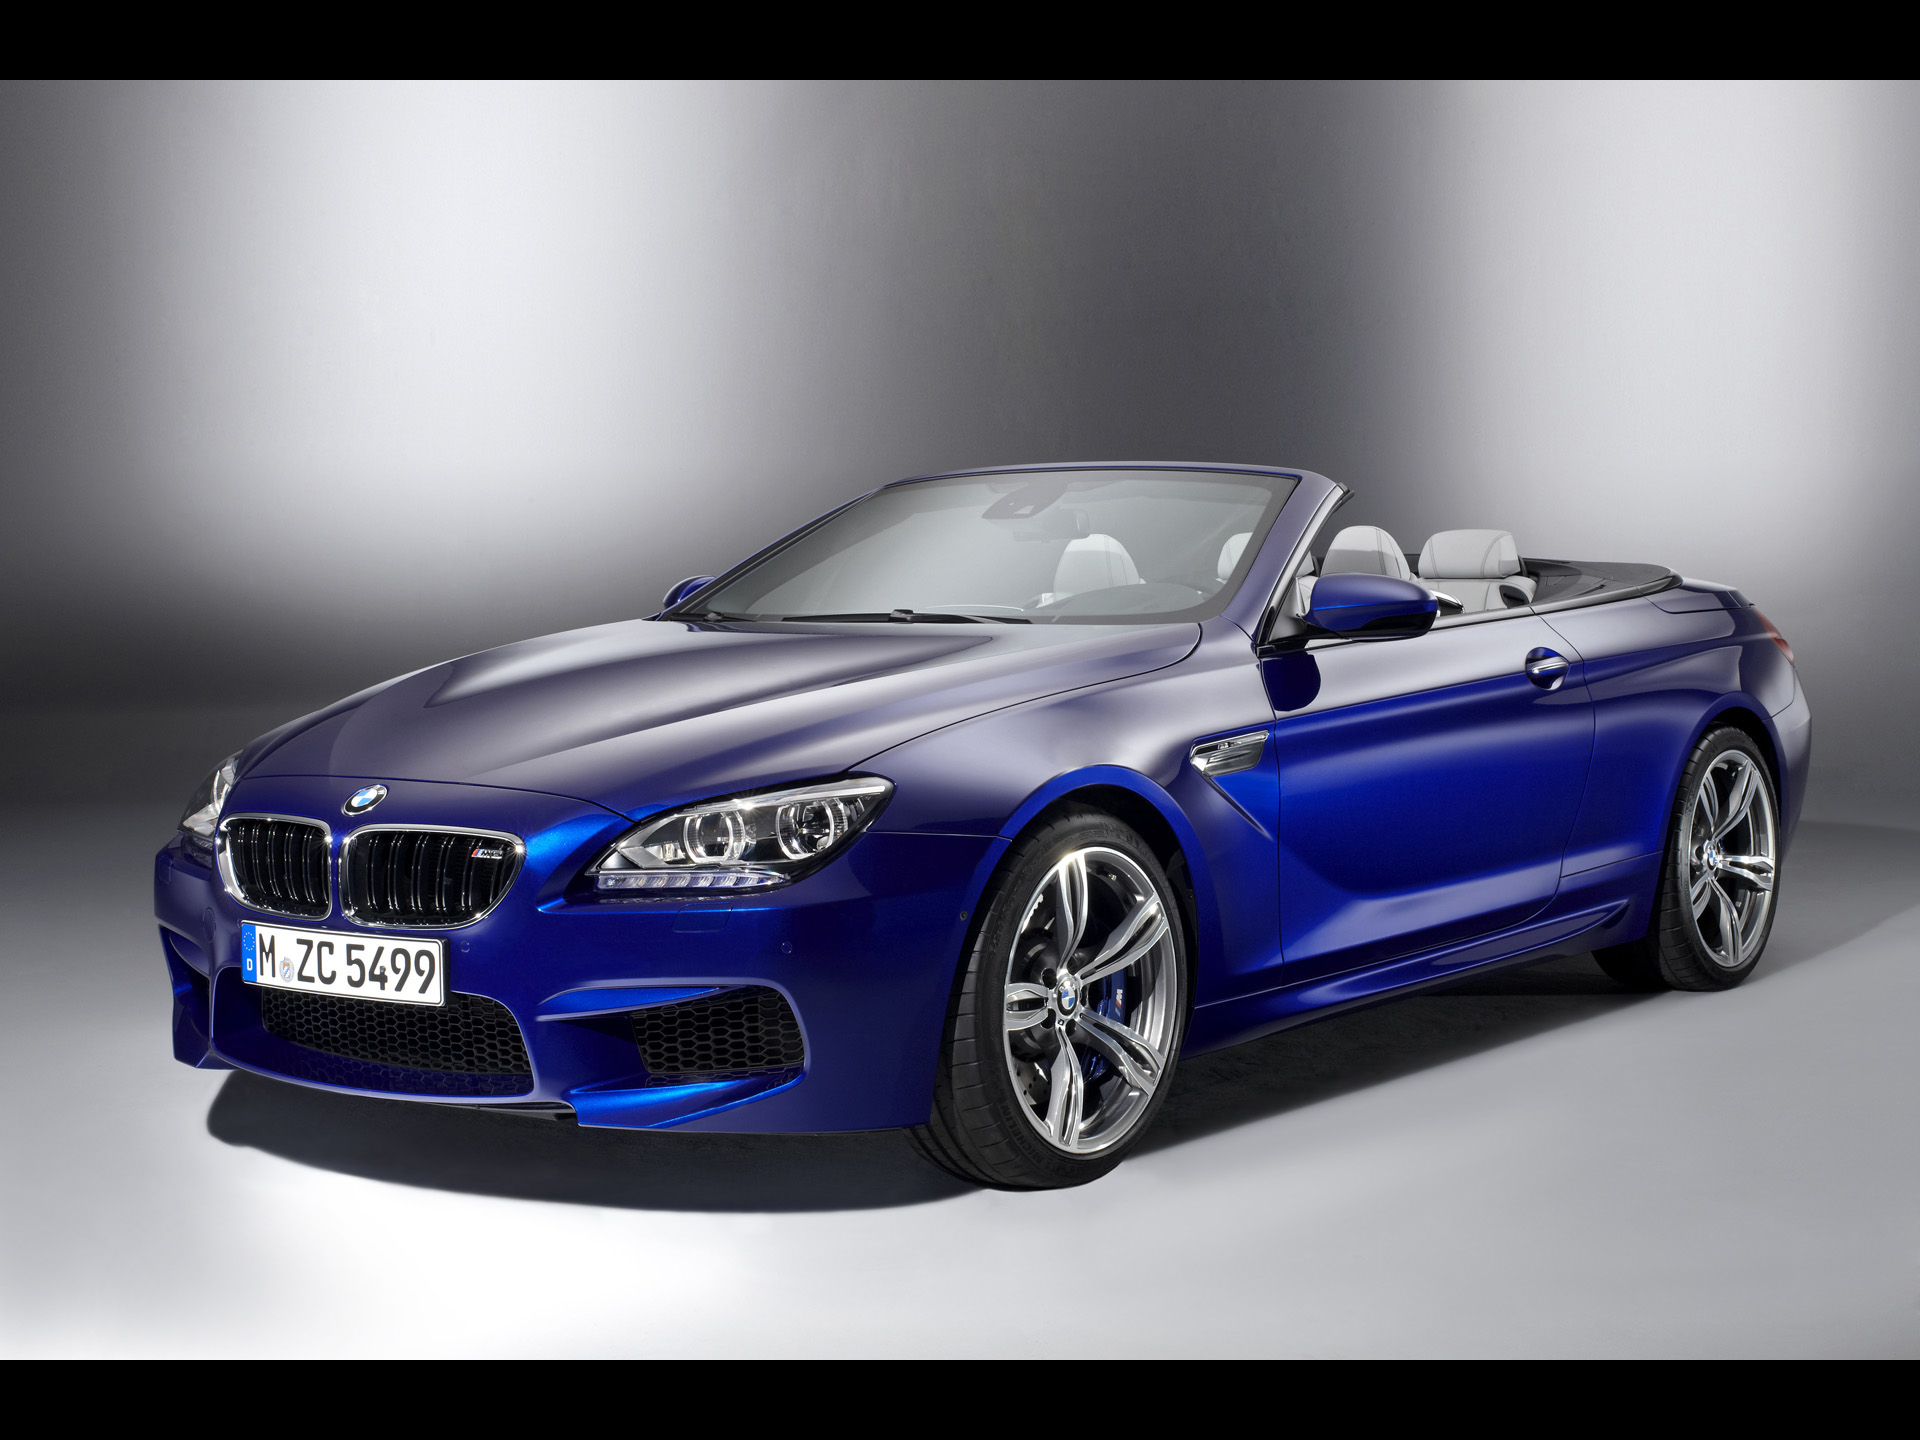 bmw images bmw m6 cabrio wallpaper photos 29312237. Black Bedroom Furniture Sets. Home Design Ideas